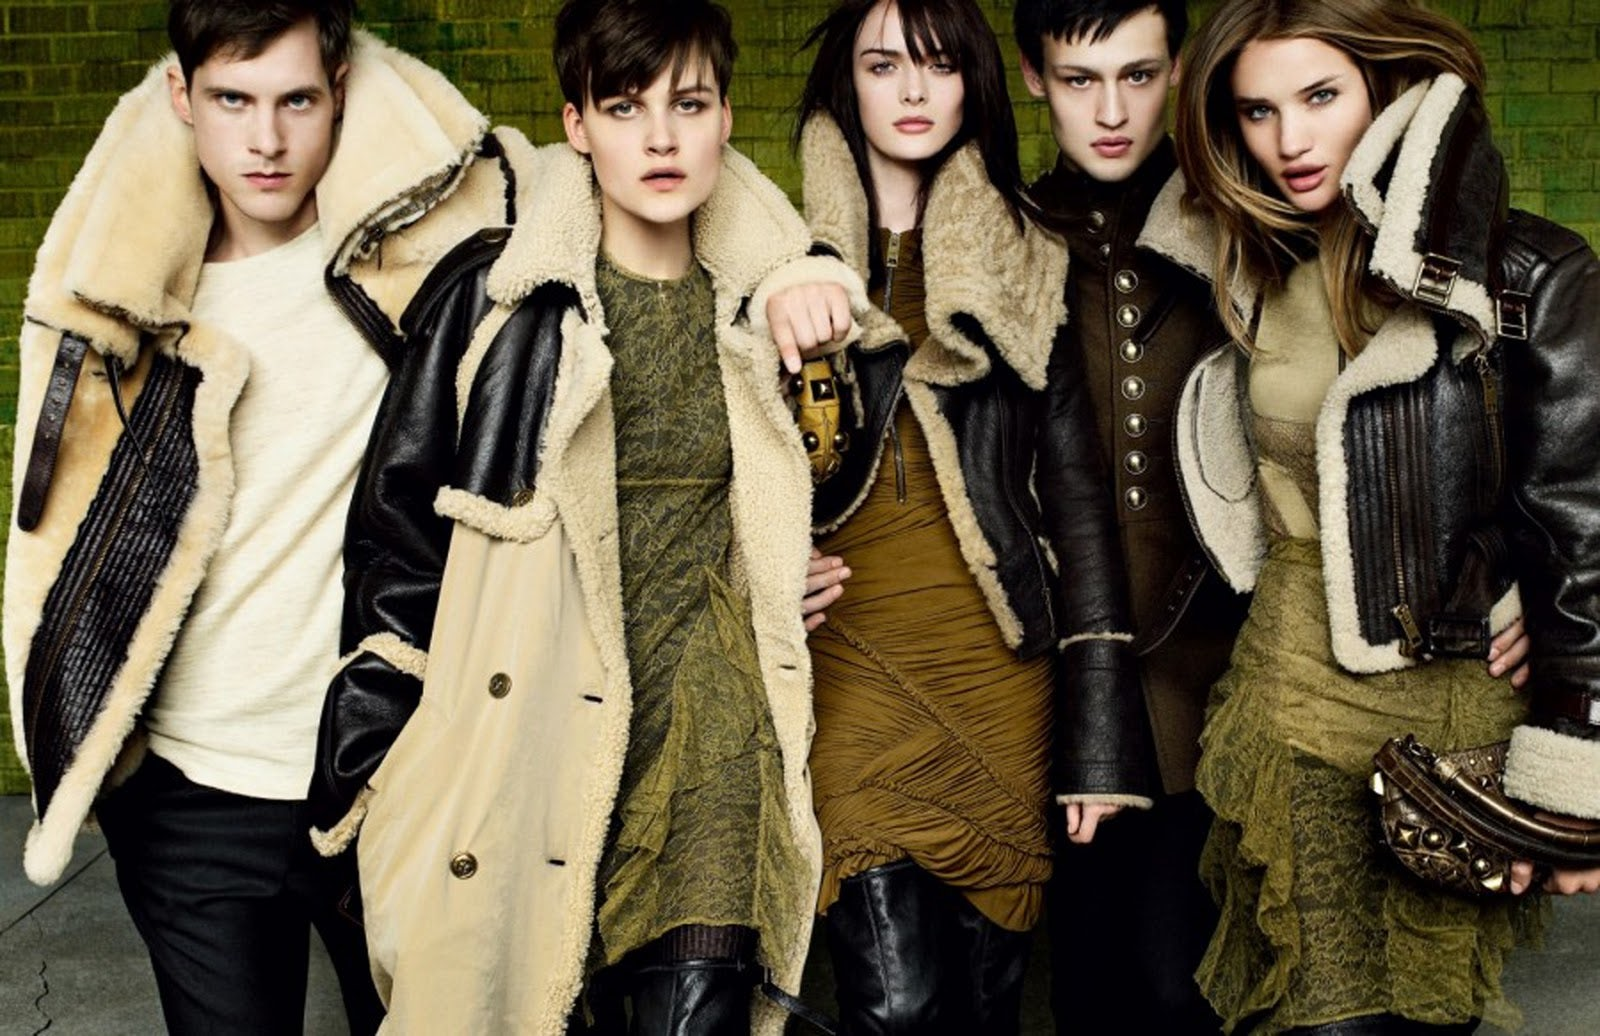 Burberry Autumn/Winter 2010 | Source: Burberry